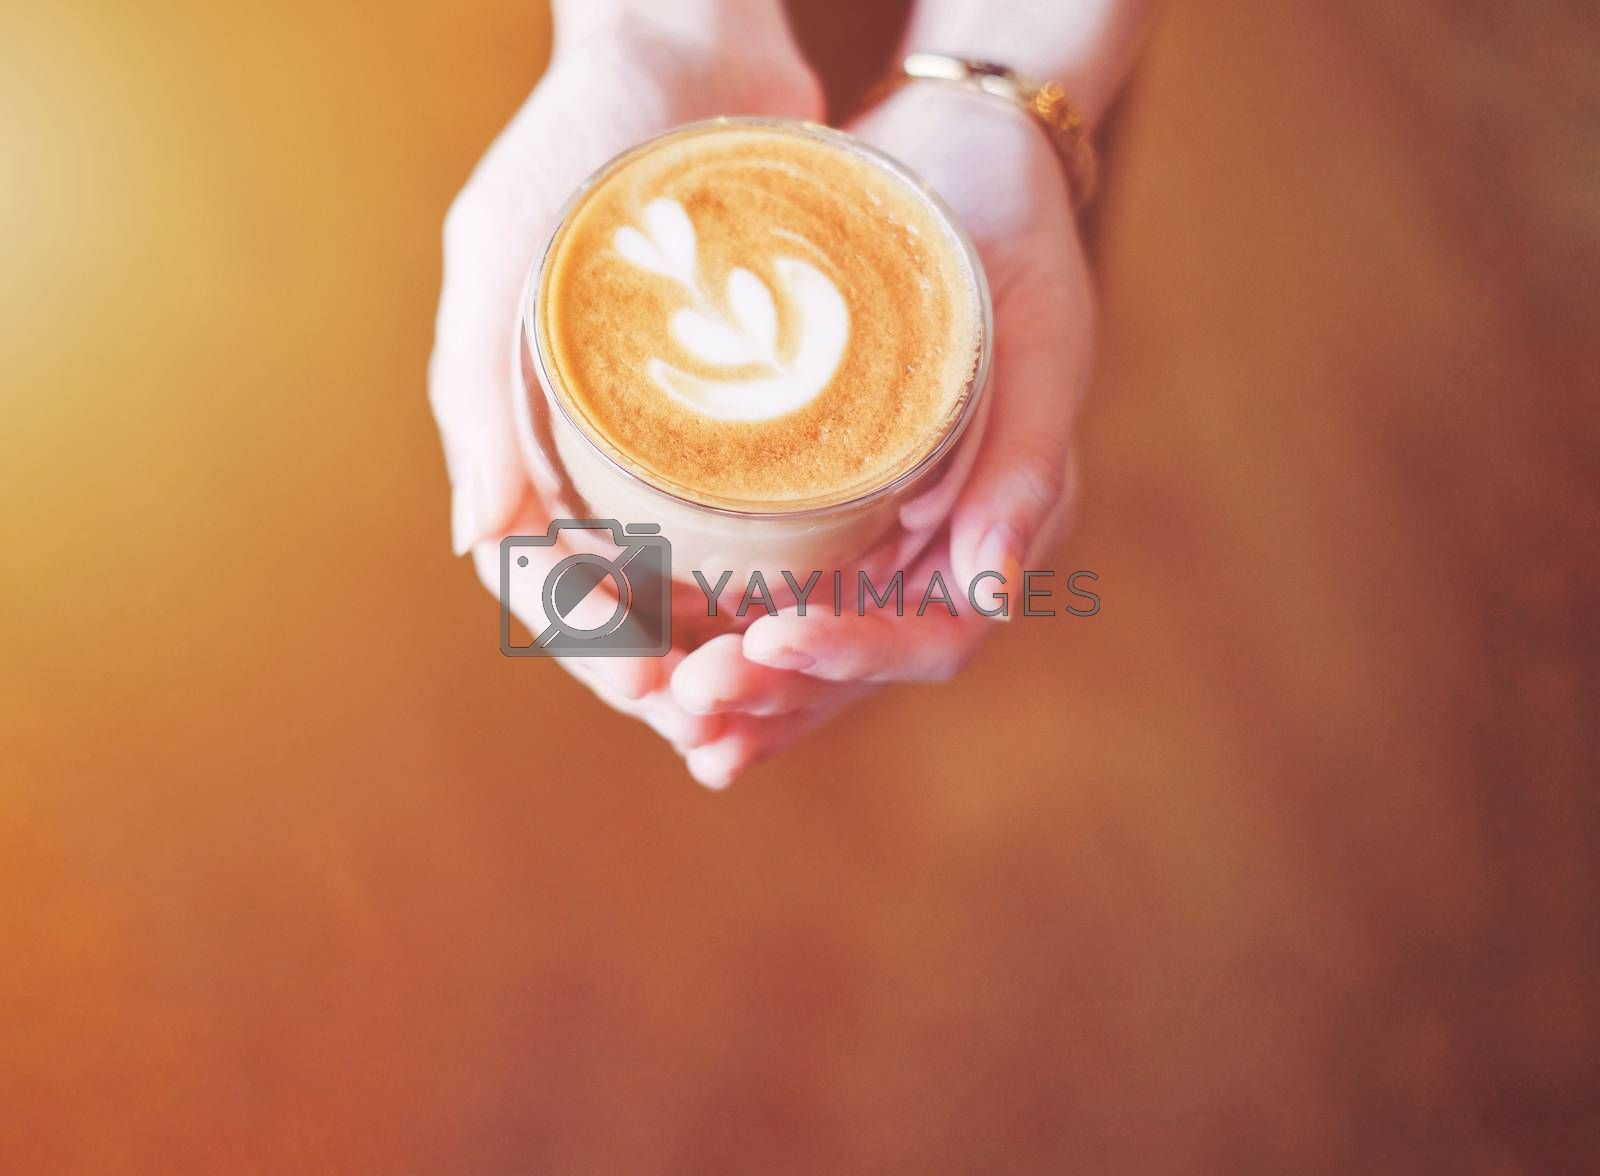 Royalty free image of Close up hands of barista woman holding cup of hot cappuccino co by nuchylee